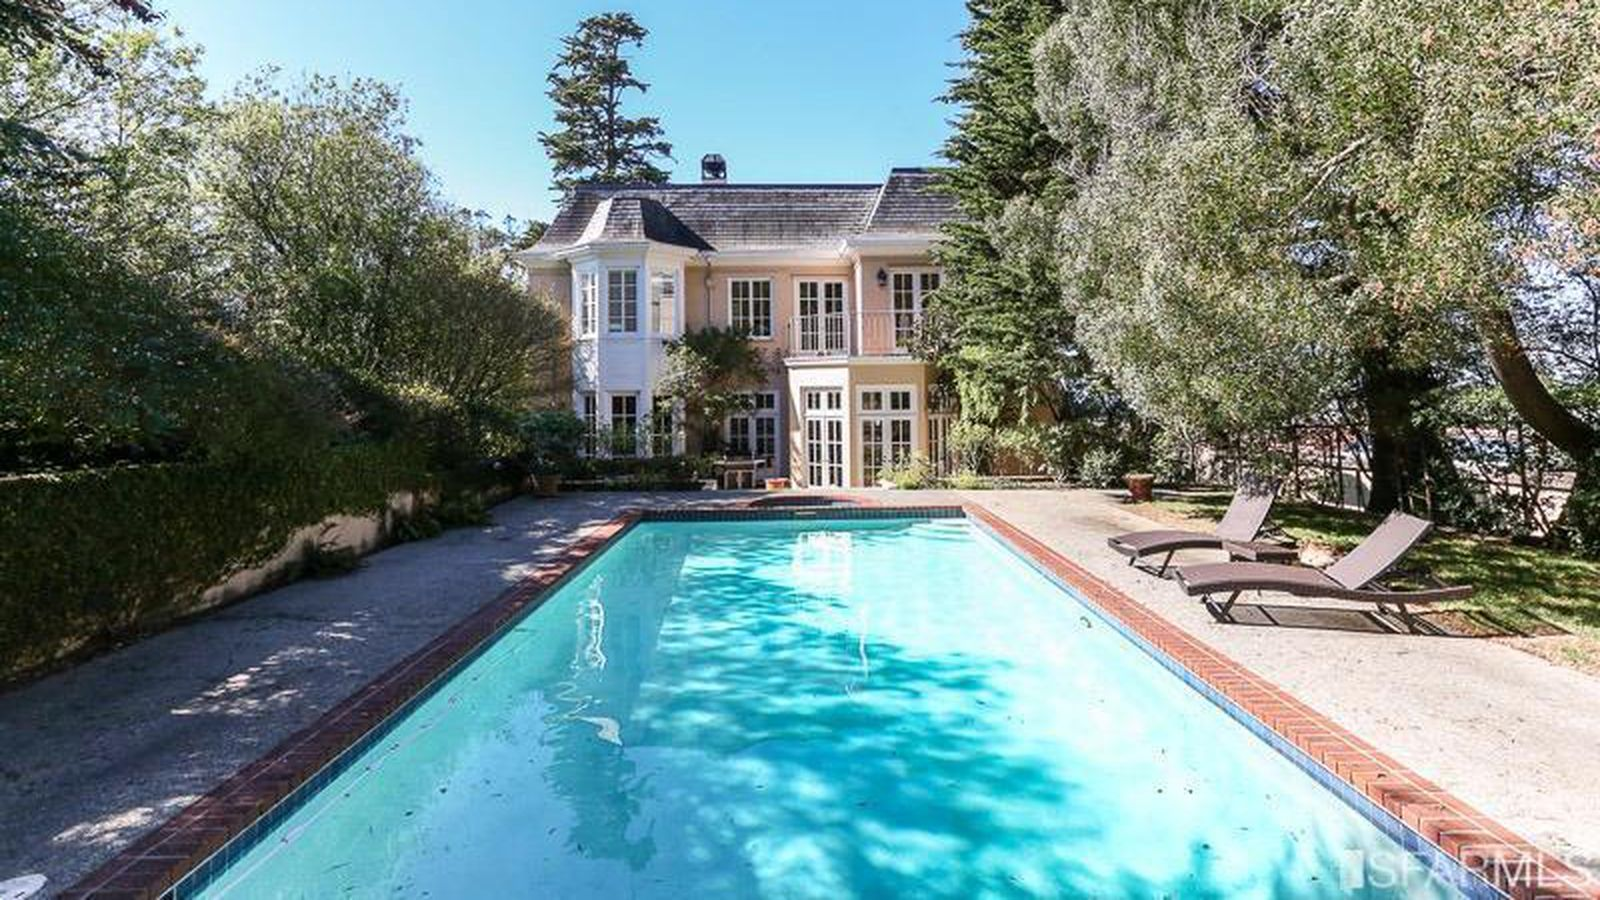 4 San Francisco homes with pools - Curbed SF